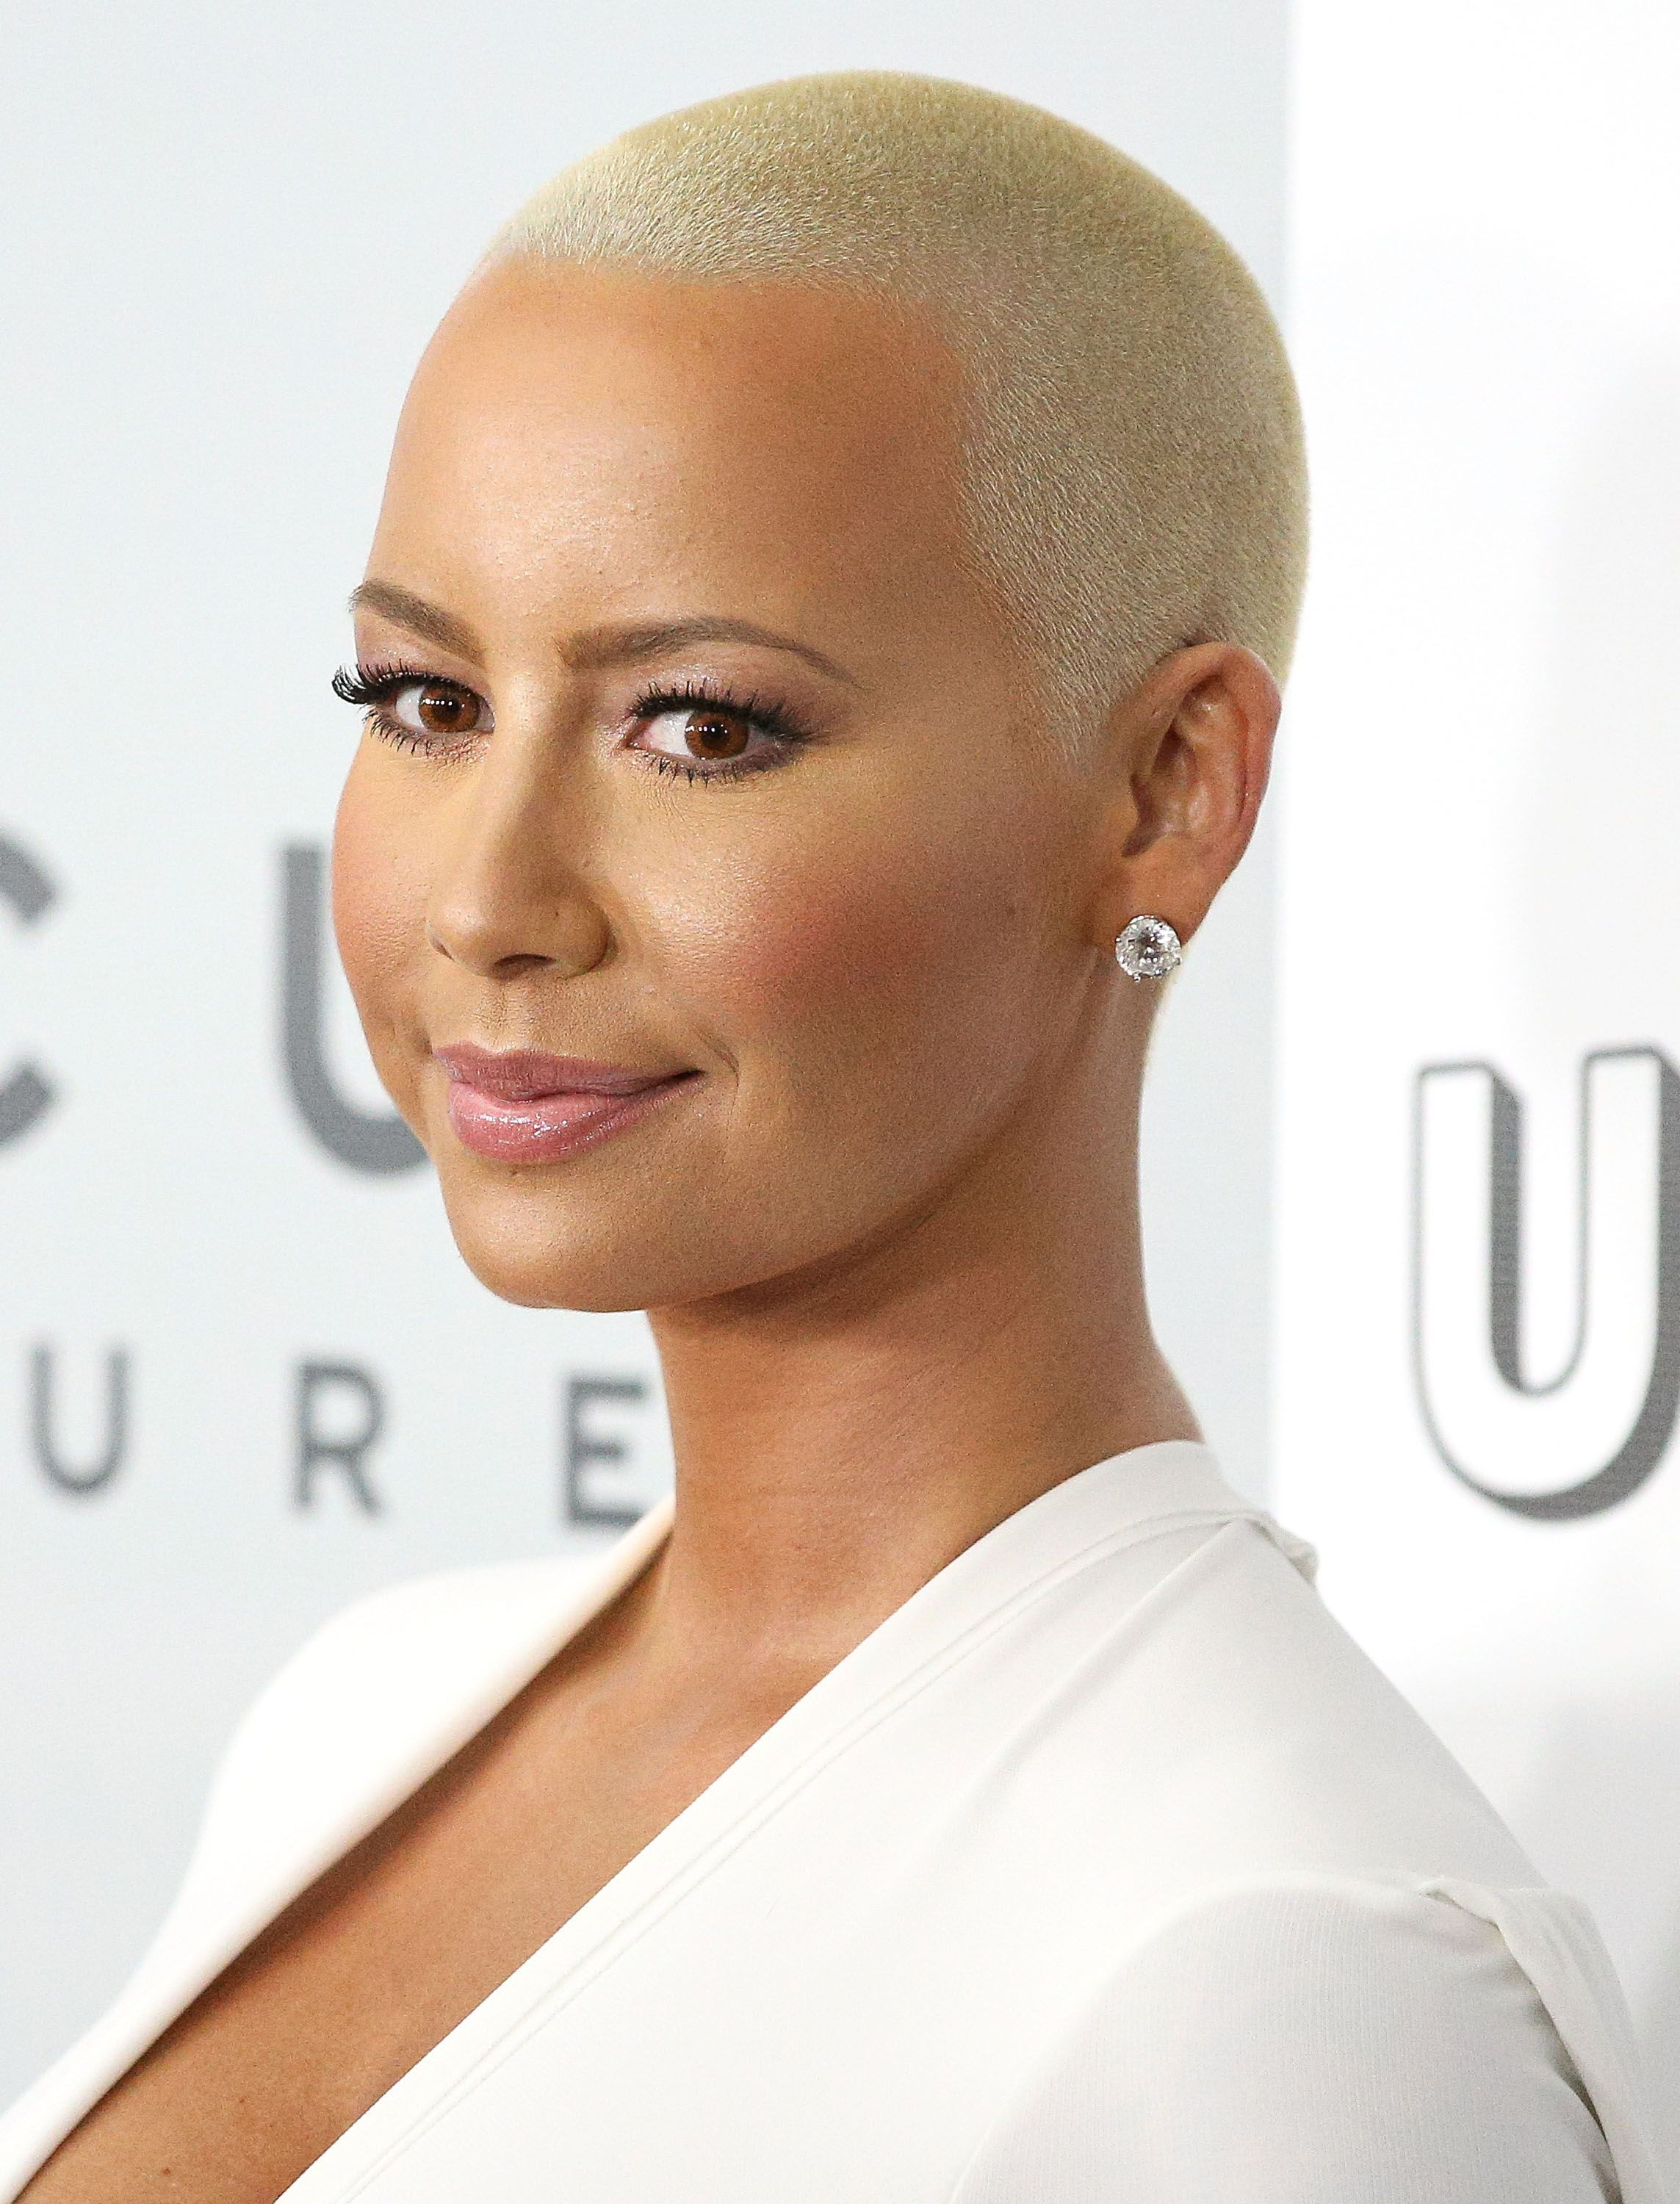 Best ideas about Female Shaved Head Hairstyles . Save or Pin 15 Famous Women Who Shaved Their Heads Hair Now.